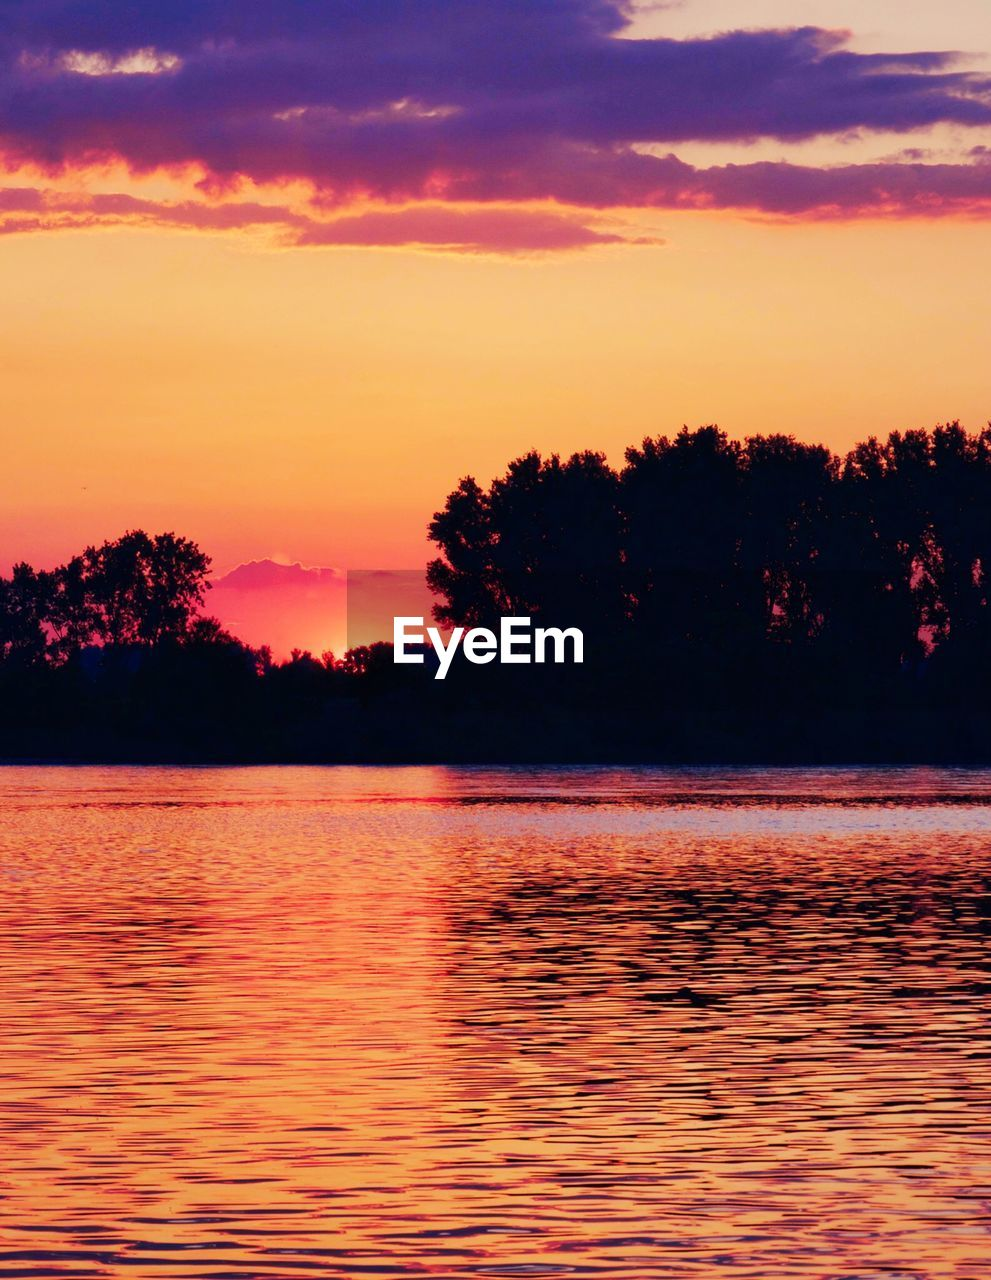 sunset, sky, water, beauty in nature, scenics - nature, tree, tranquility, tranquil scene, orange color, silhouette, lake, cloud - sky, nature, plant, waterfront, idyllic, no people, reflection, non-urban scene, outdoors, romantic sky